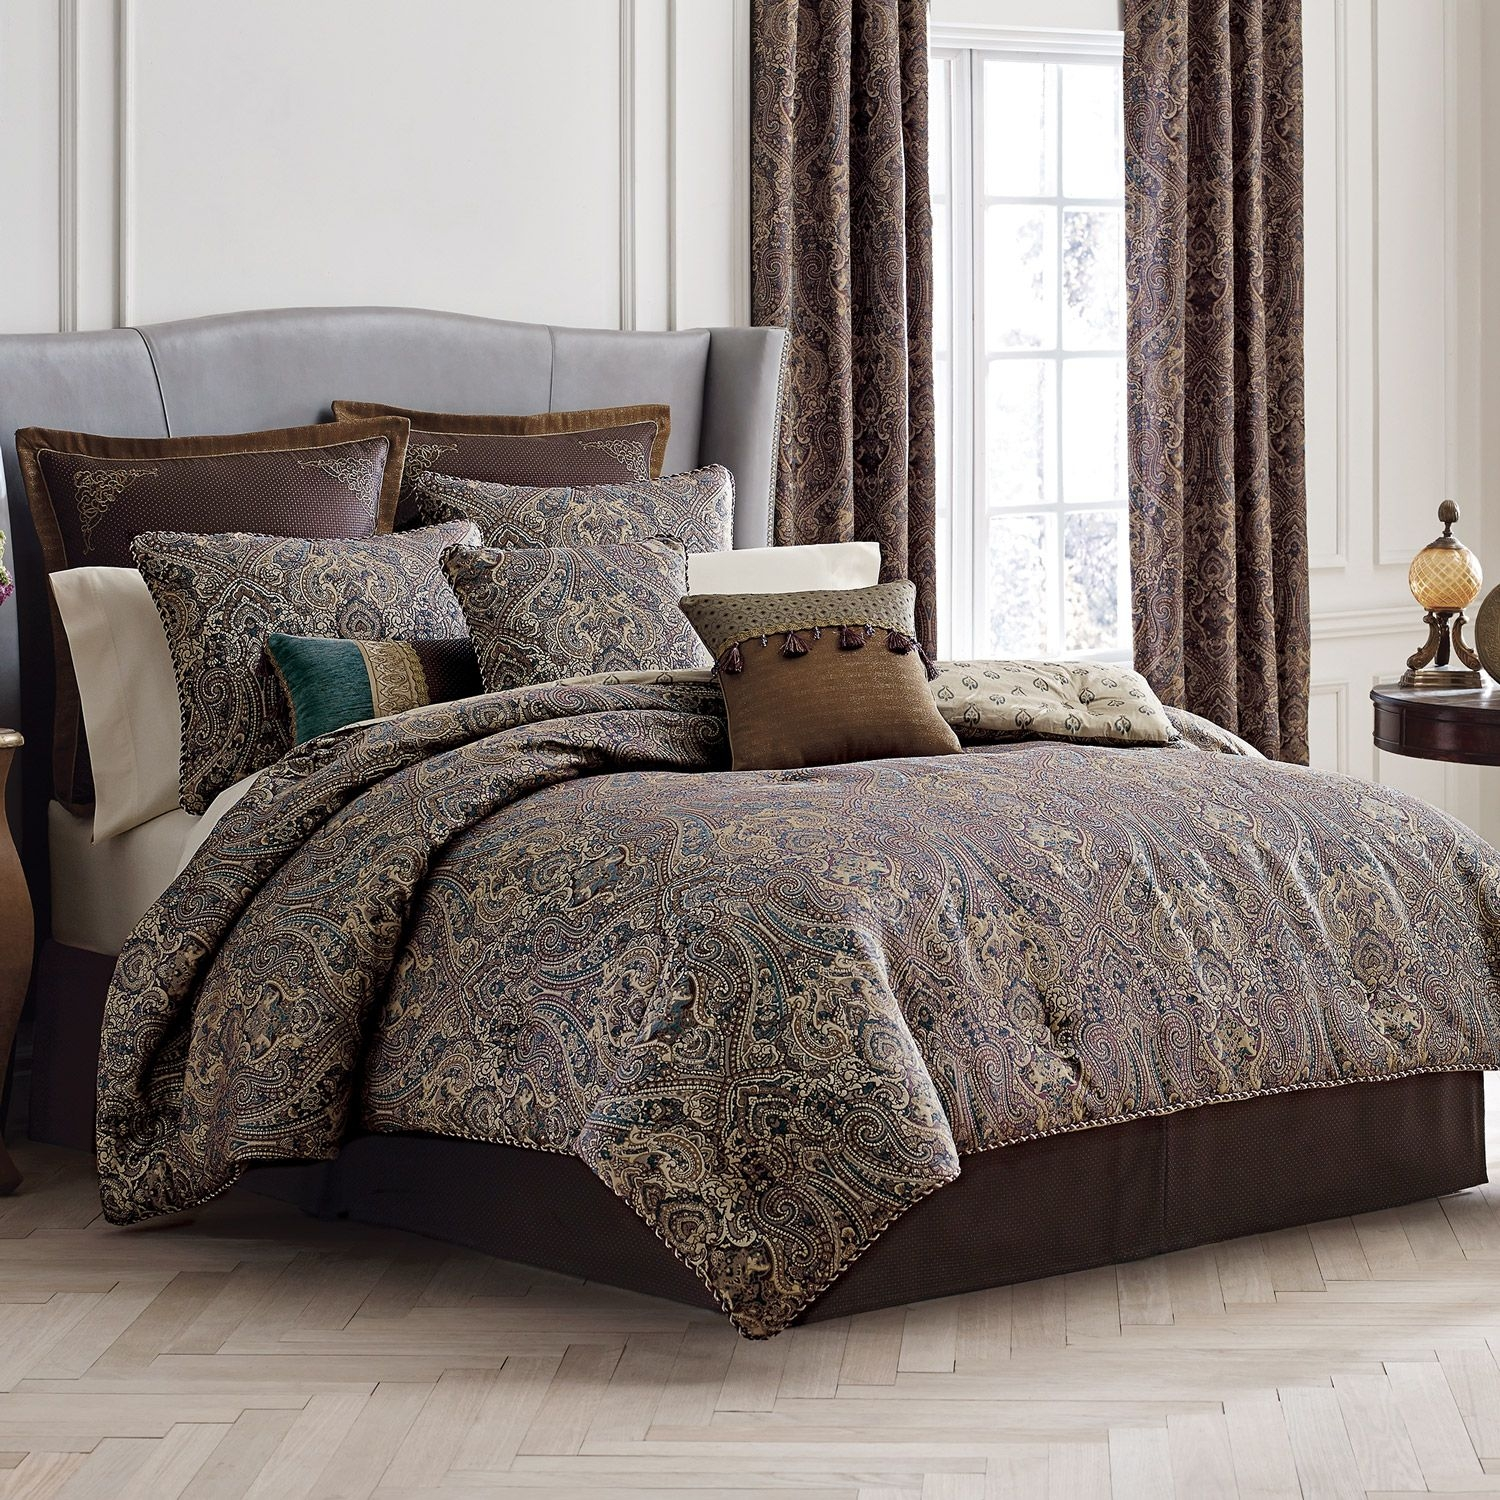 bedroom: jcpenney bedspreads and quilts | queen bedspreads | belks